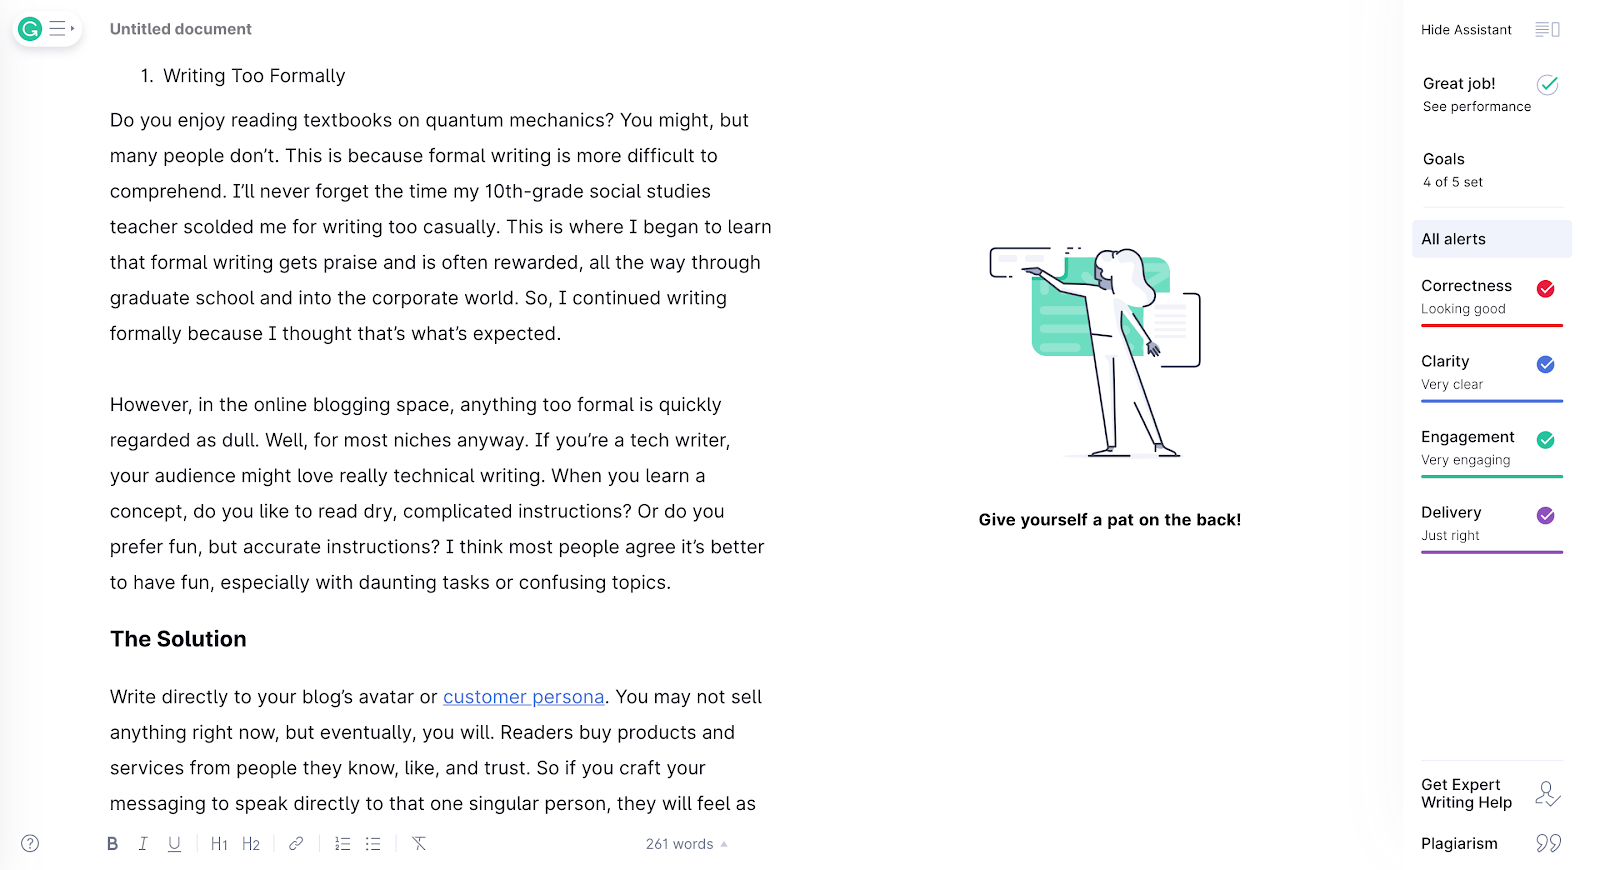 Grammarly tool interface